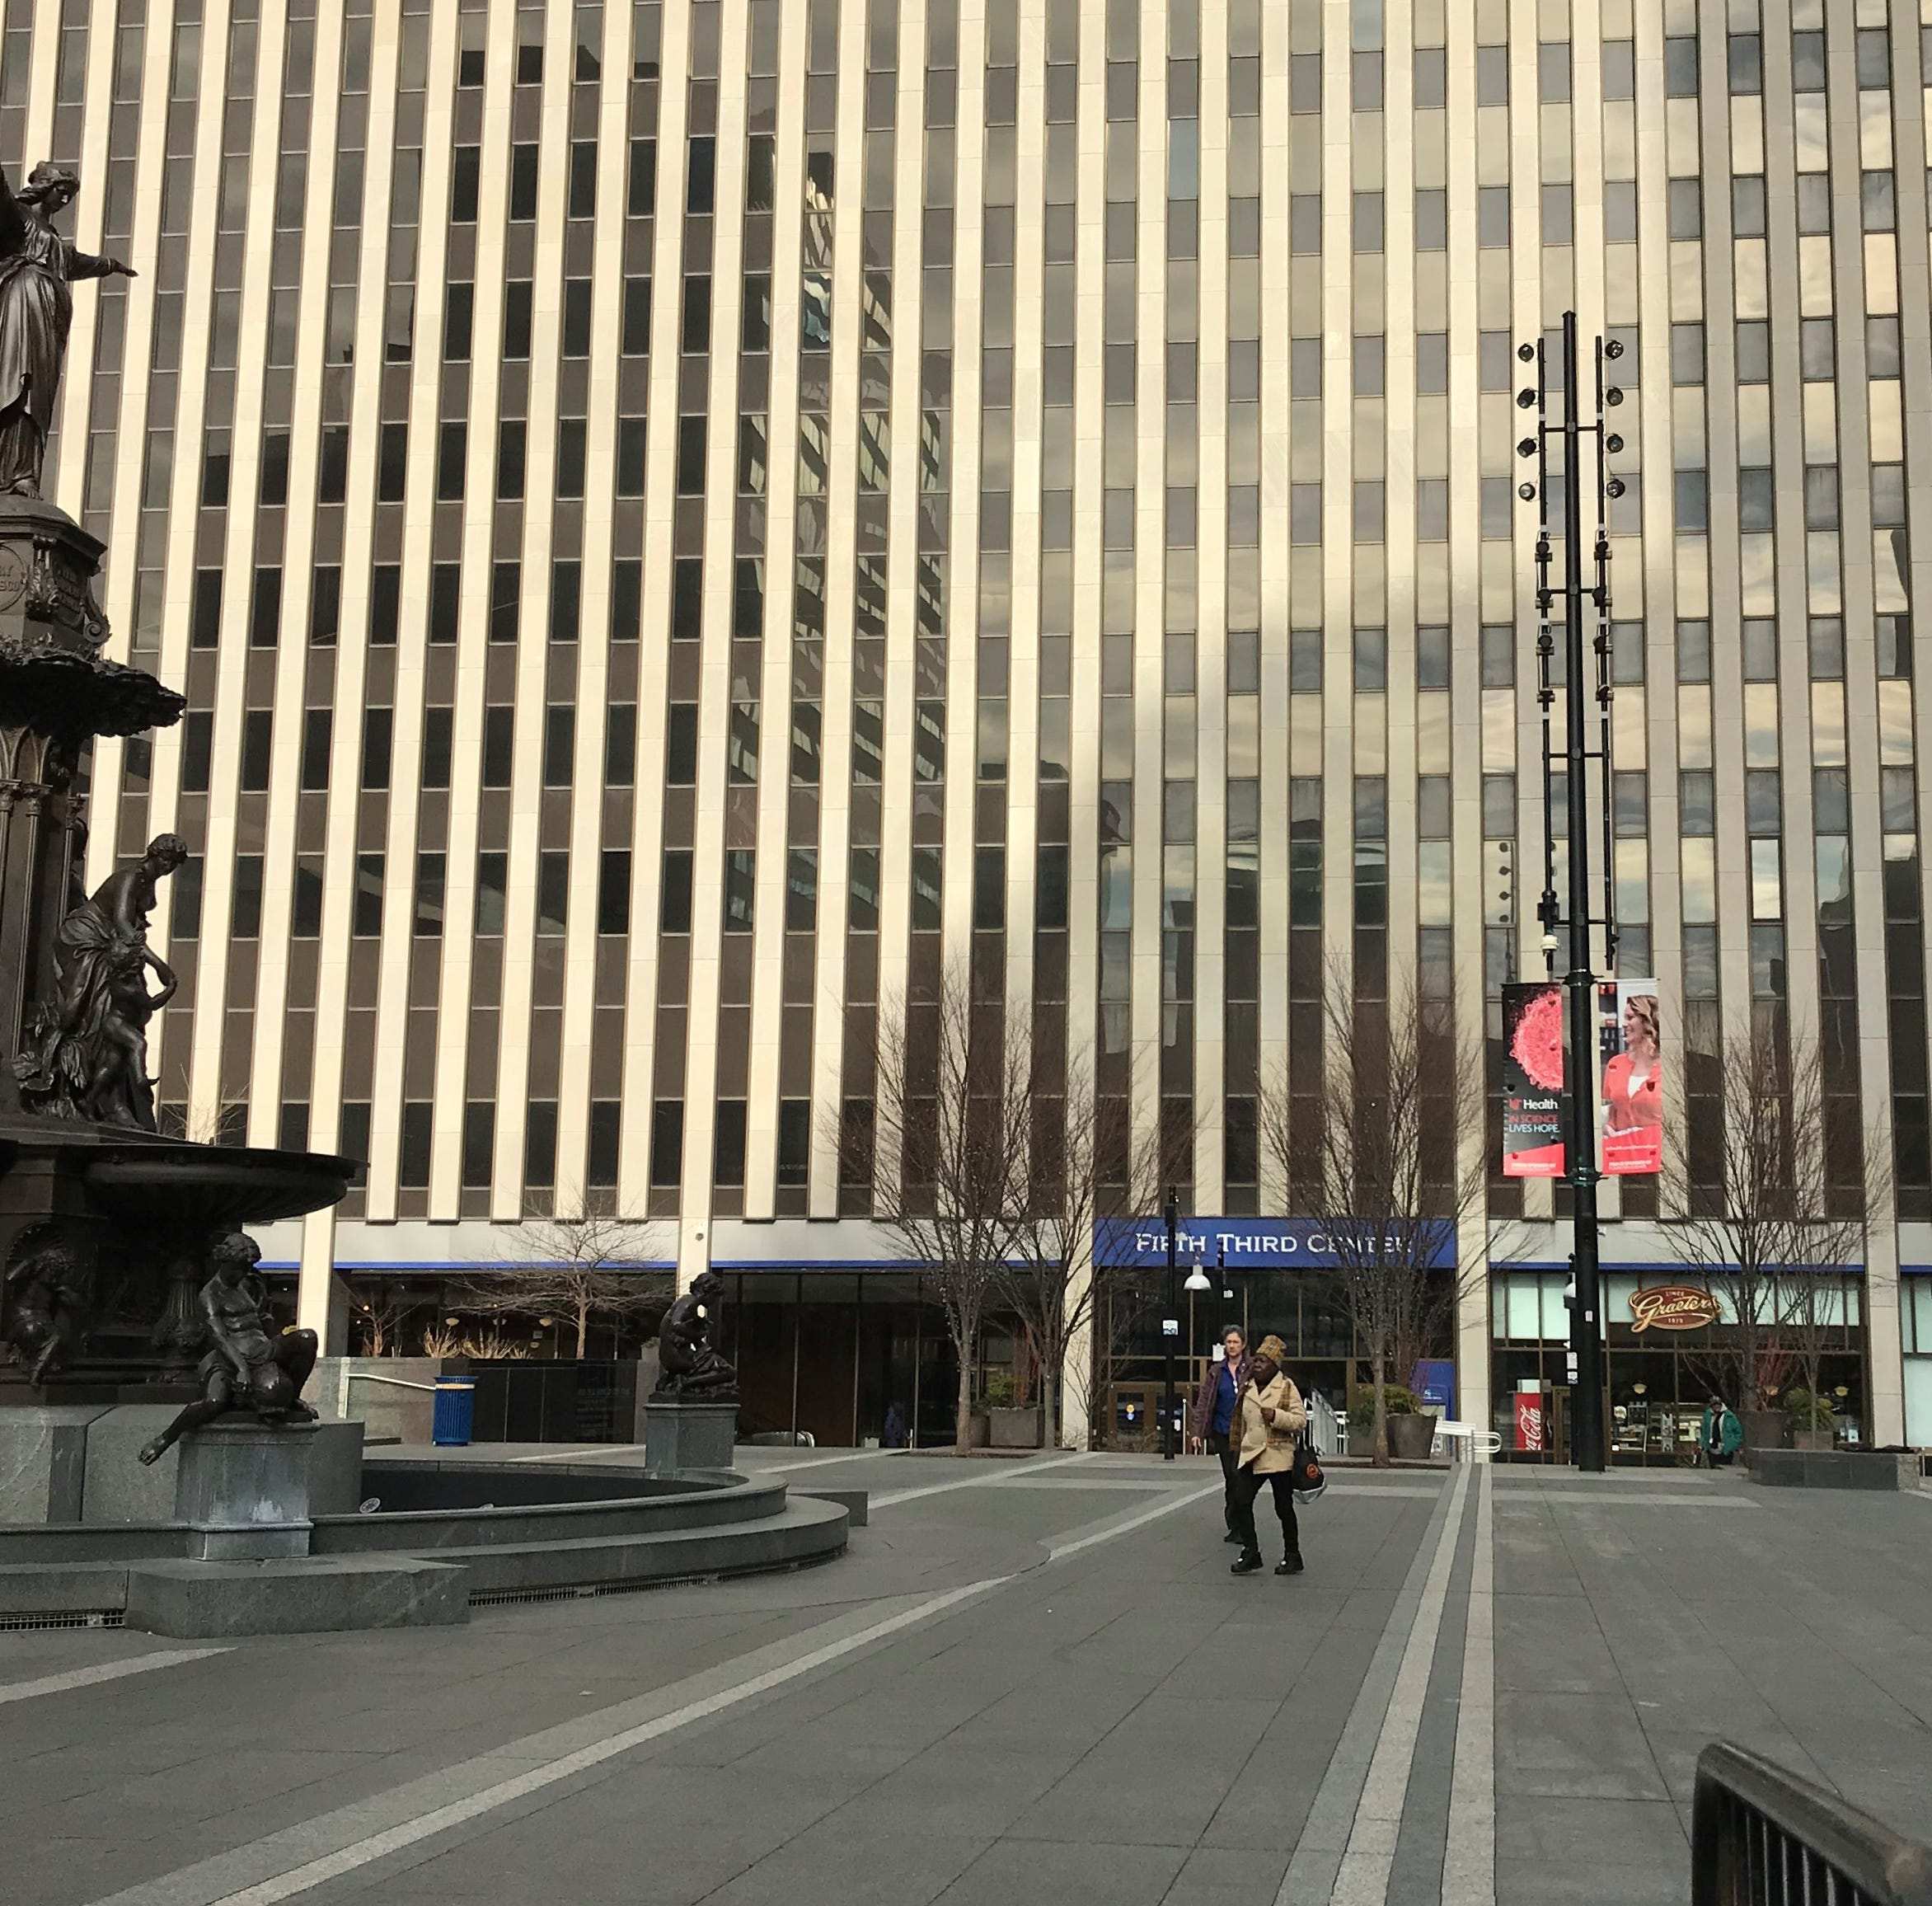 Big investment at Fountain Square: Fifth Third says it will unveil HQ plans